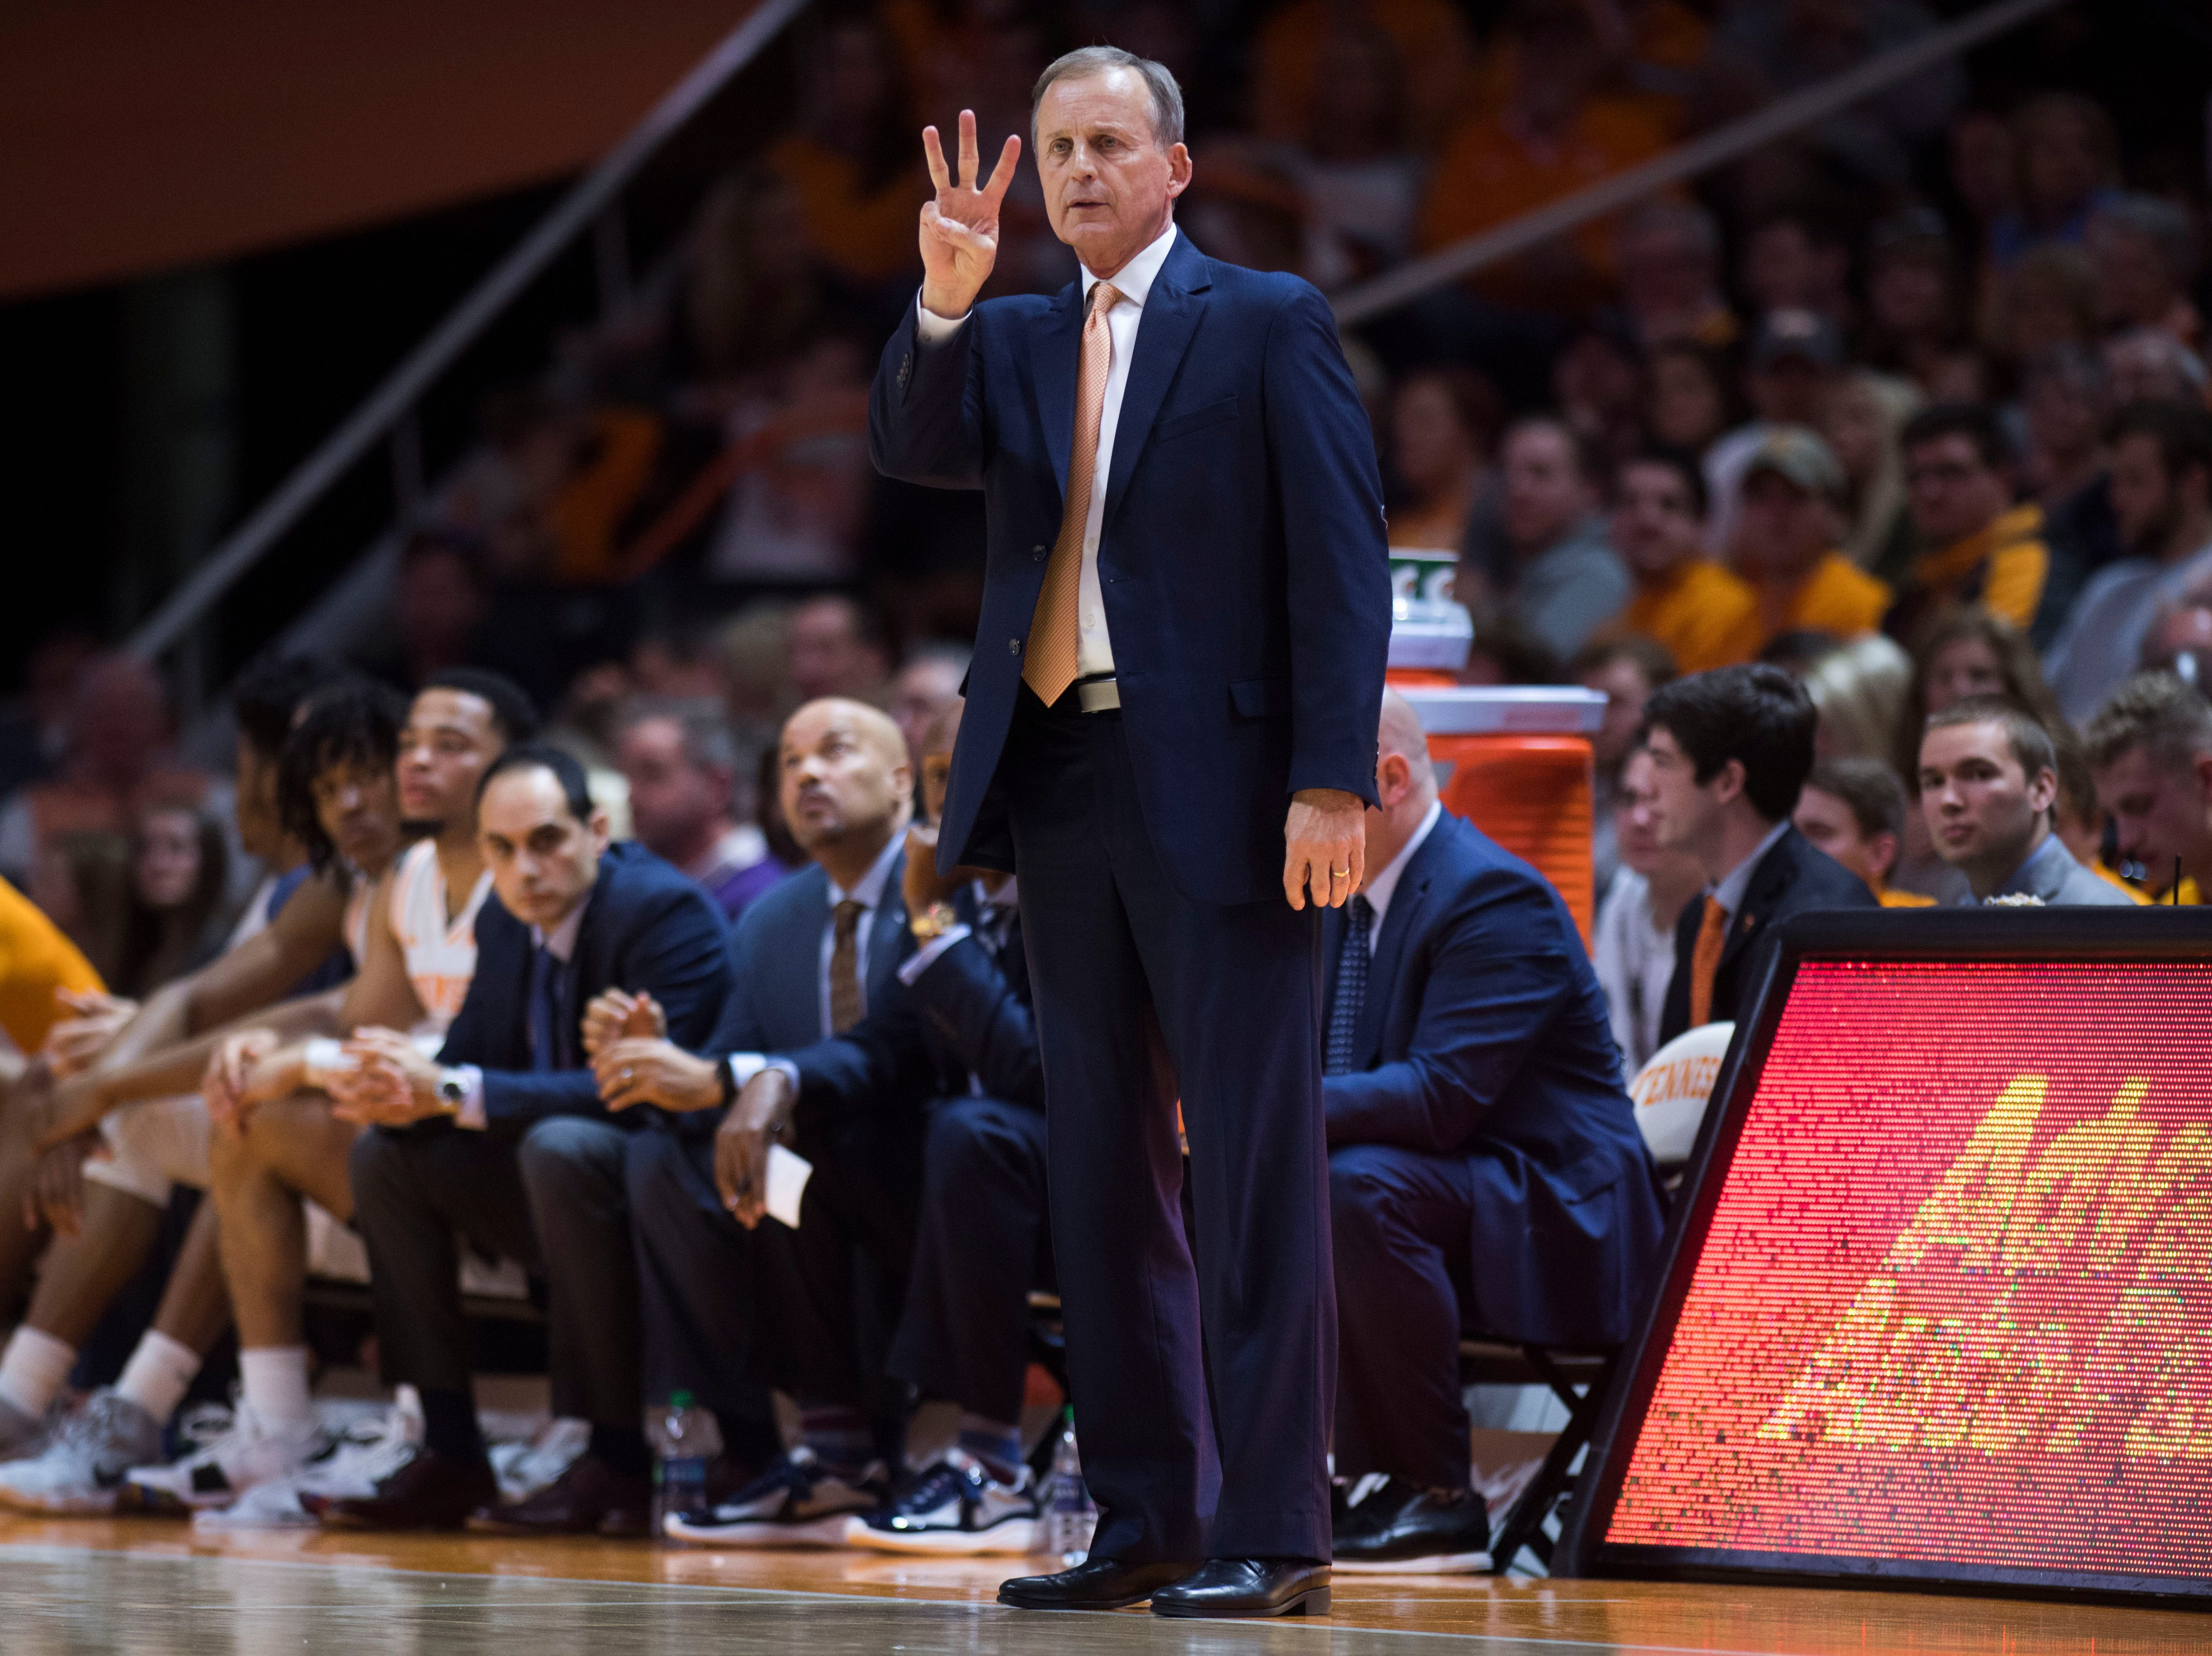 Tennessee head coach Rick Barnes yells from the sidelines during a college basketball game between Tennessee and Georgia at Thompson-Boling Arena Saturday, Jan. 5, 2019.